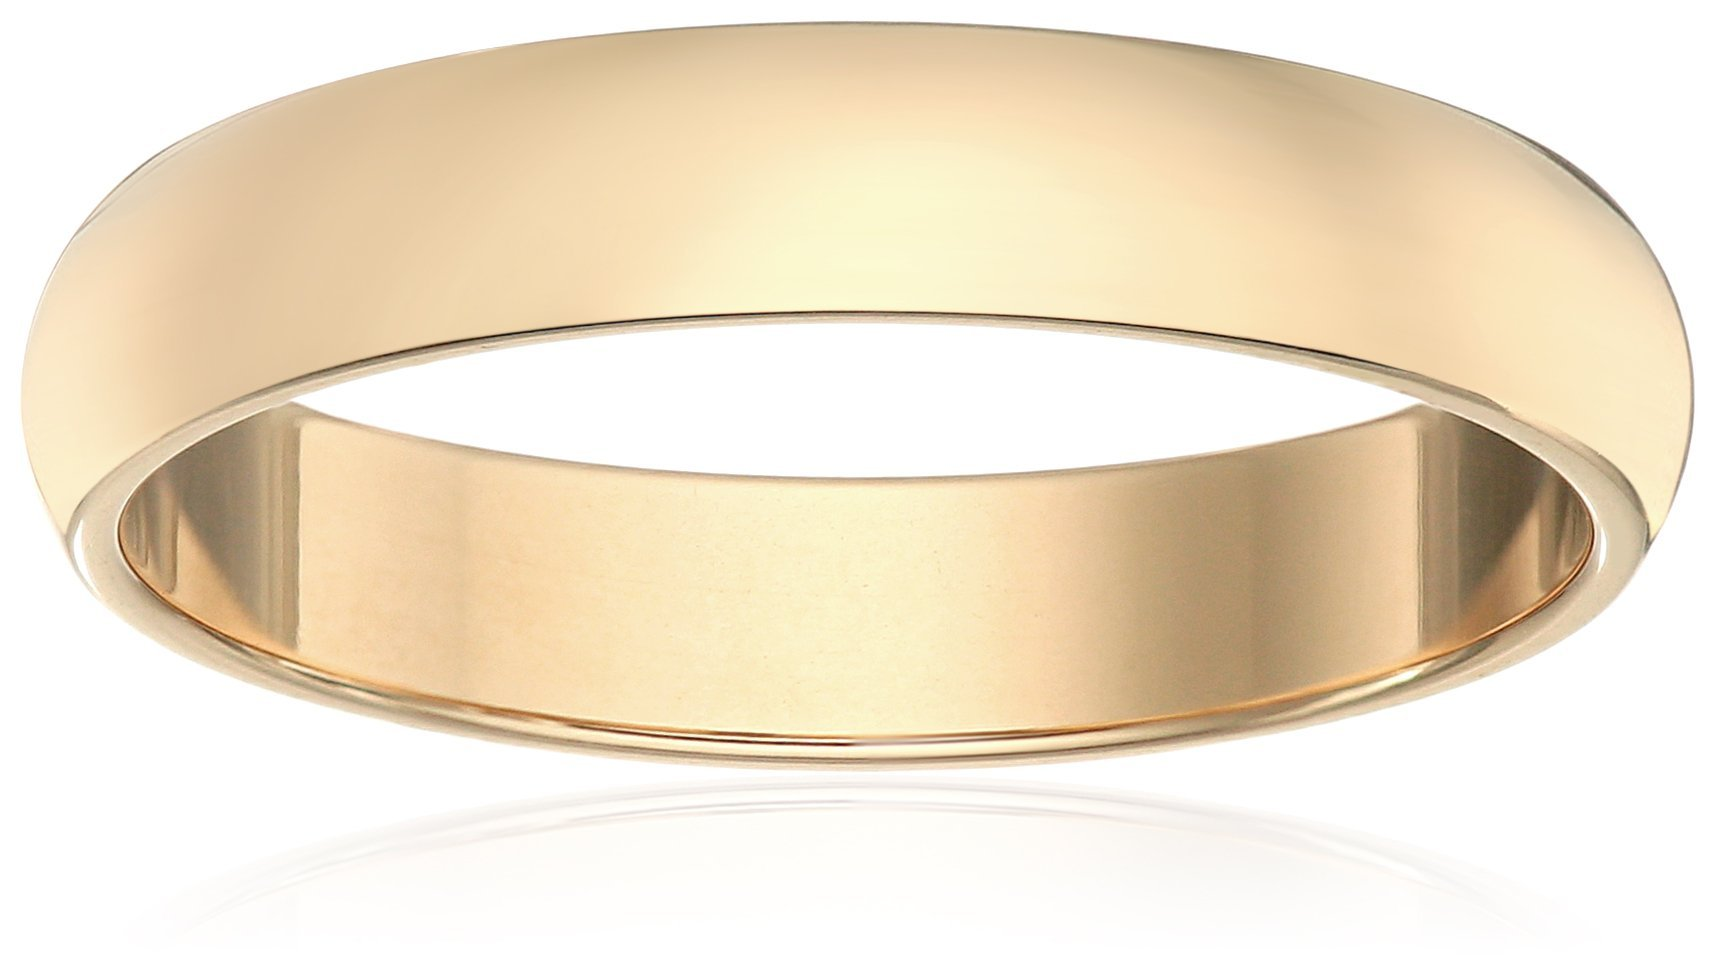 Classic Fit 14K Yellow Gold Band, 4mm, Size 7